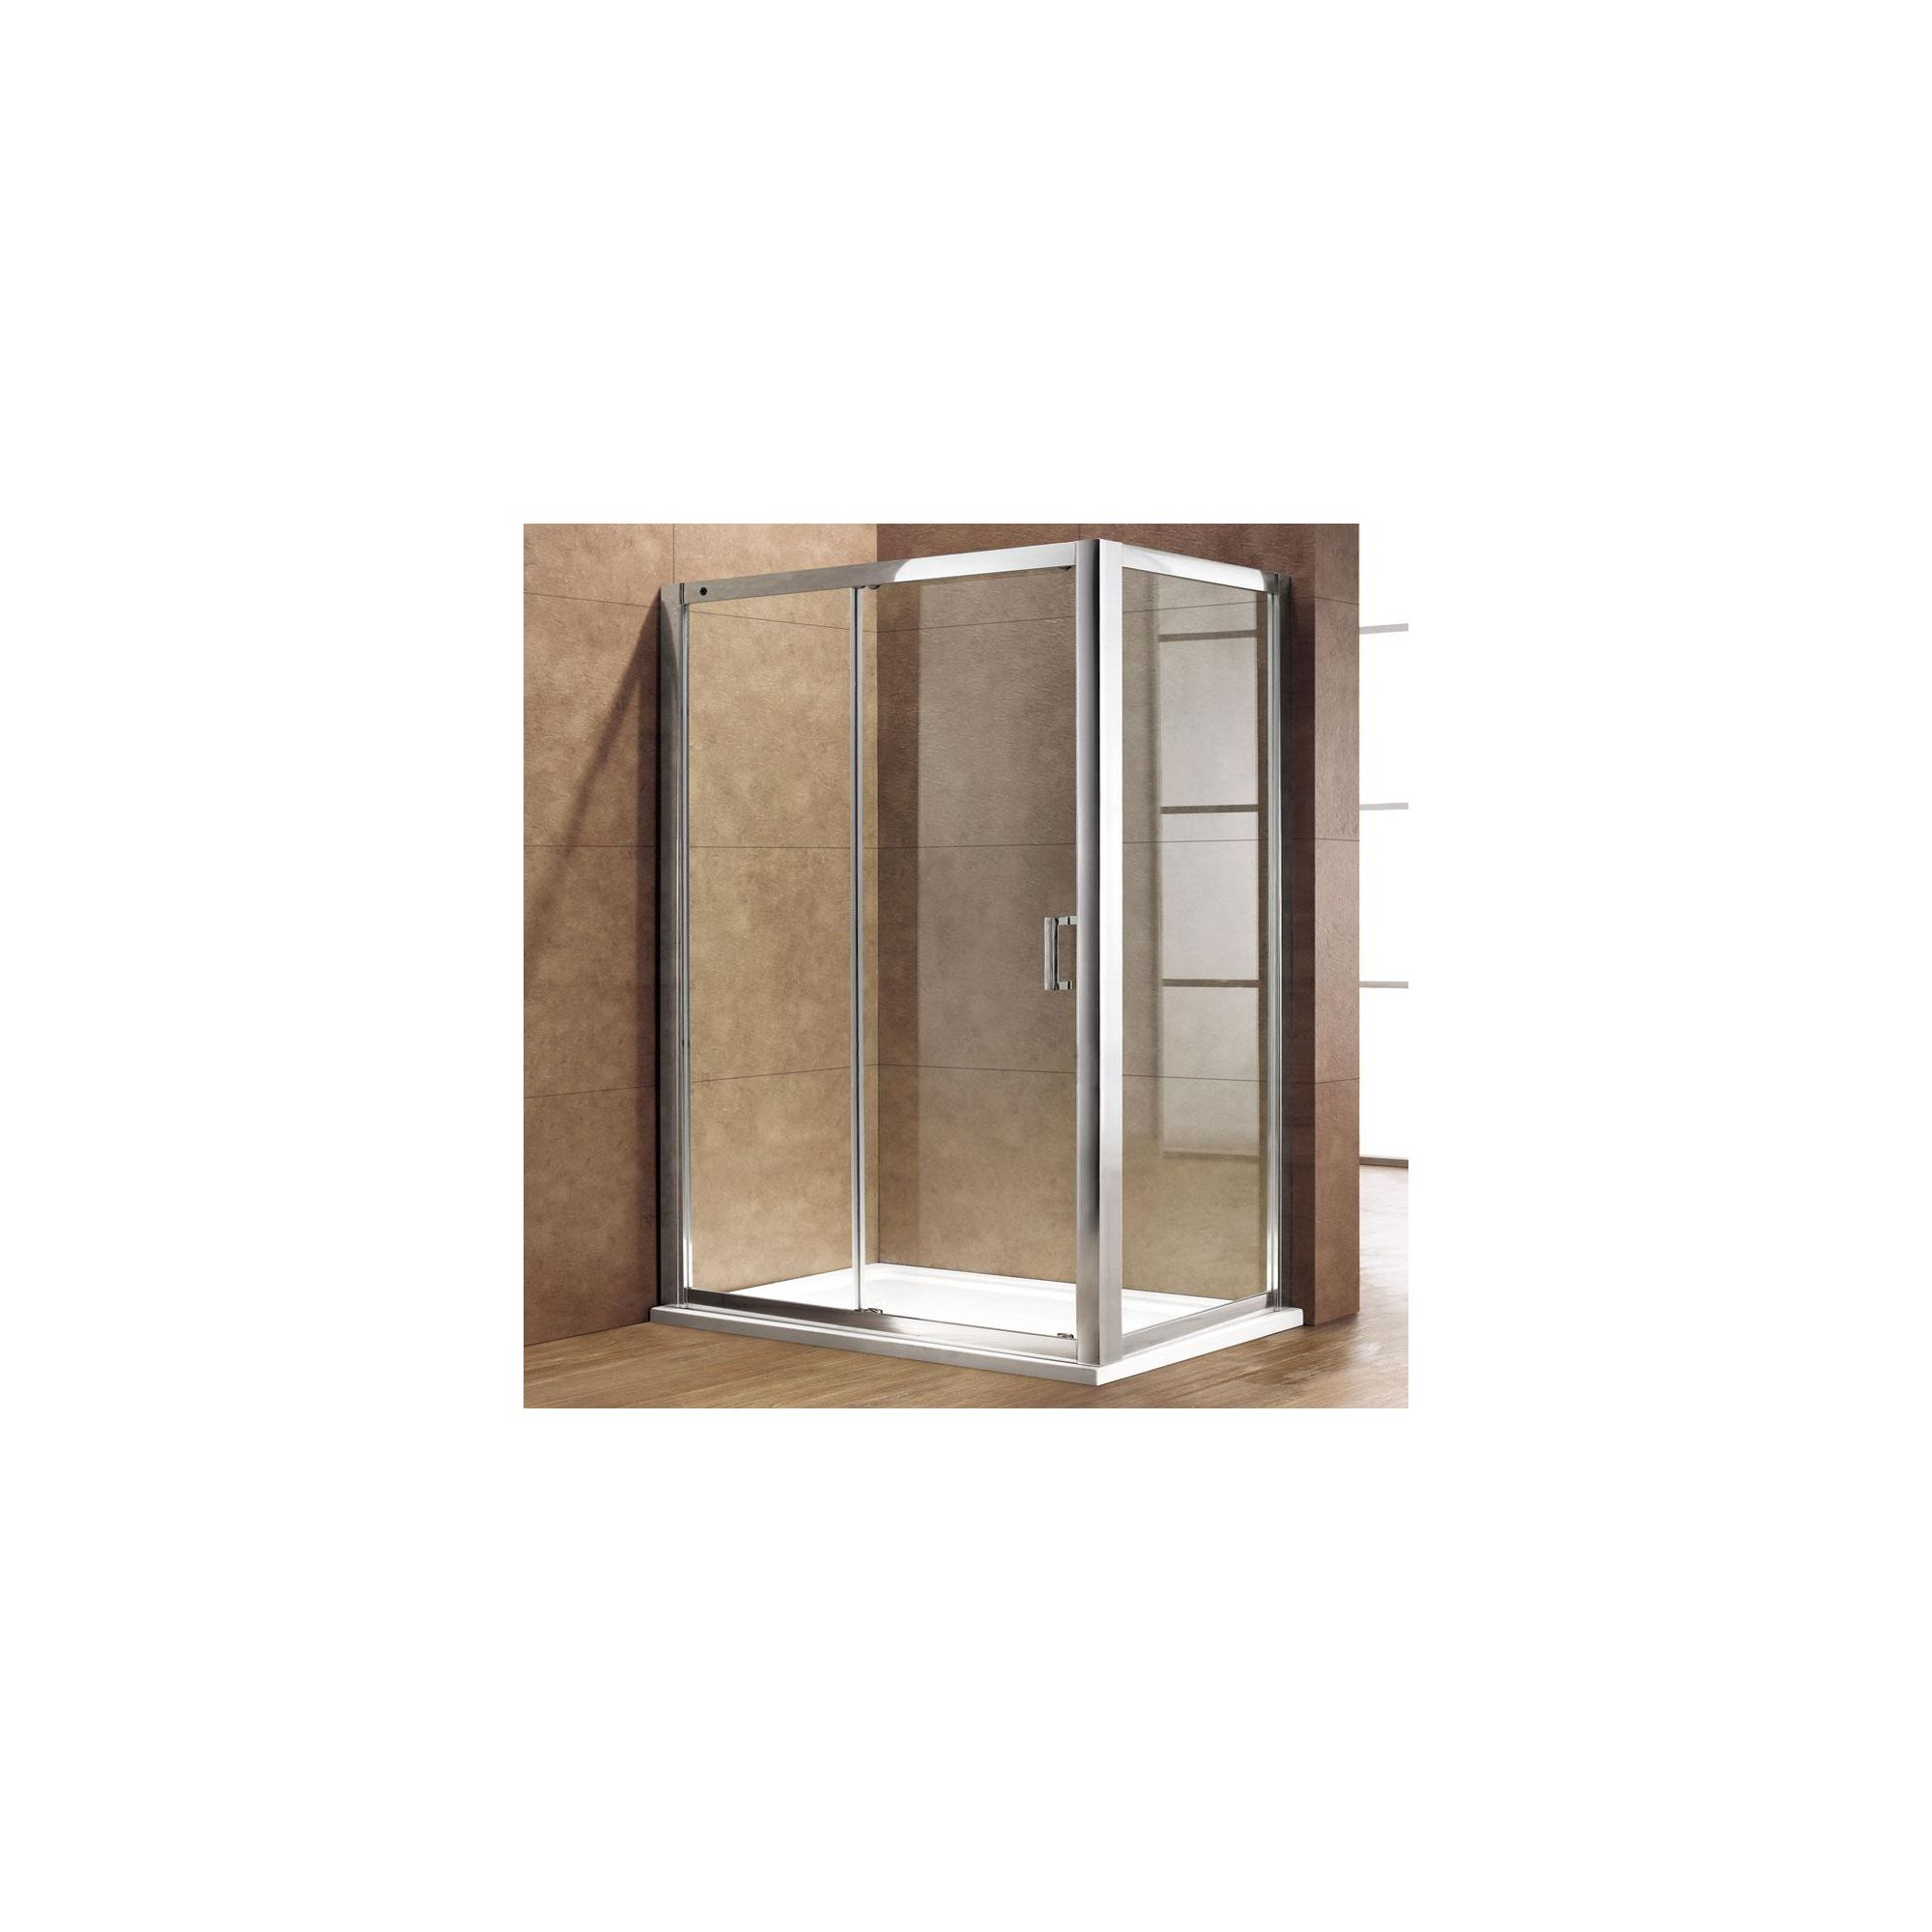 Duchy Premium Single Sliding Shower Door, 1400mm Wide, 8mm Glass at Tesco Direct